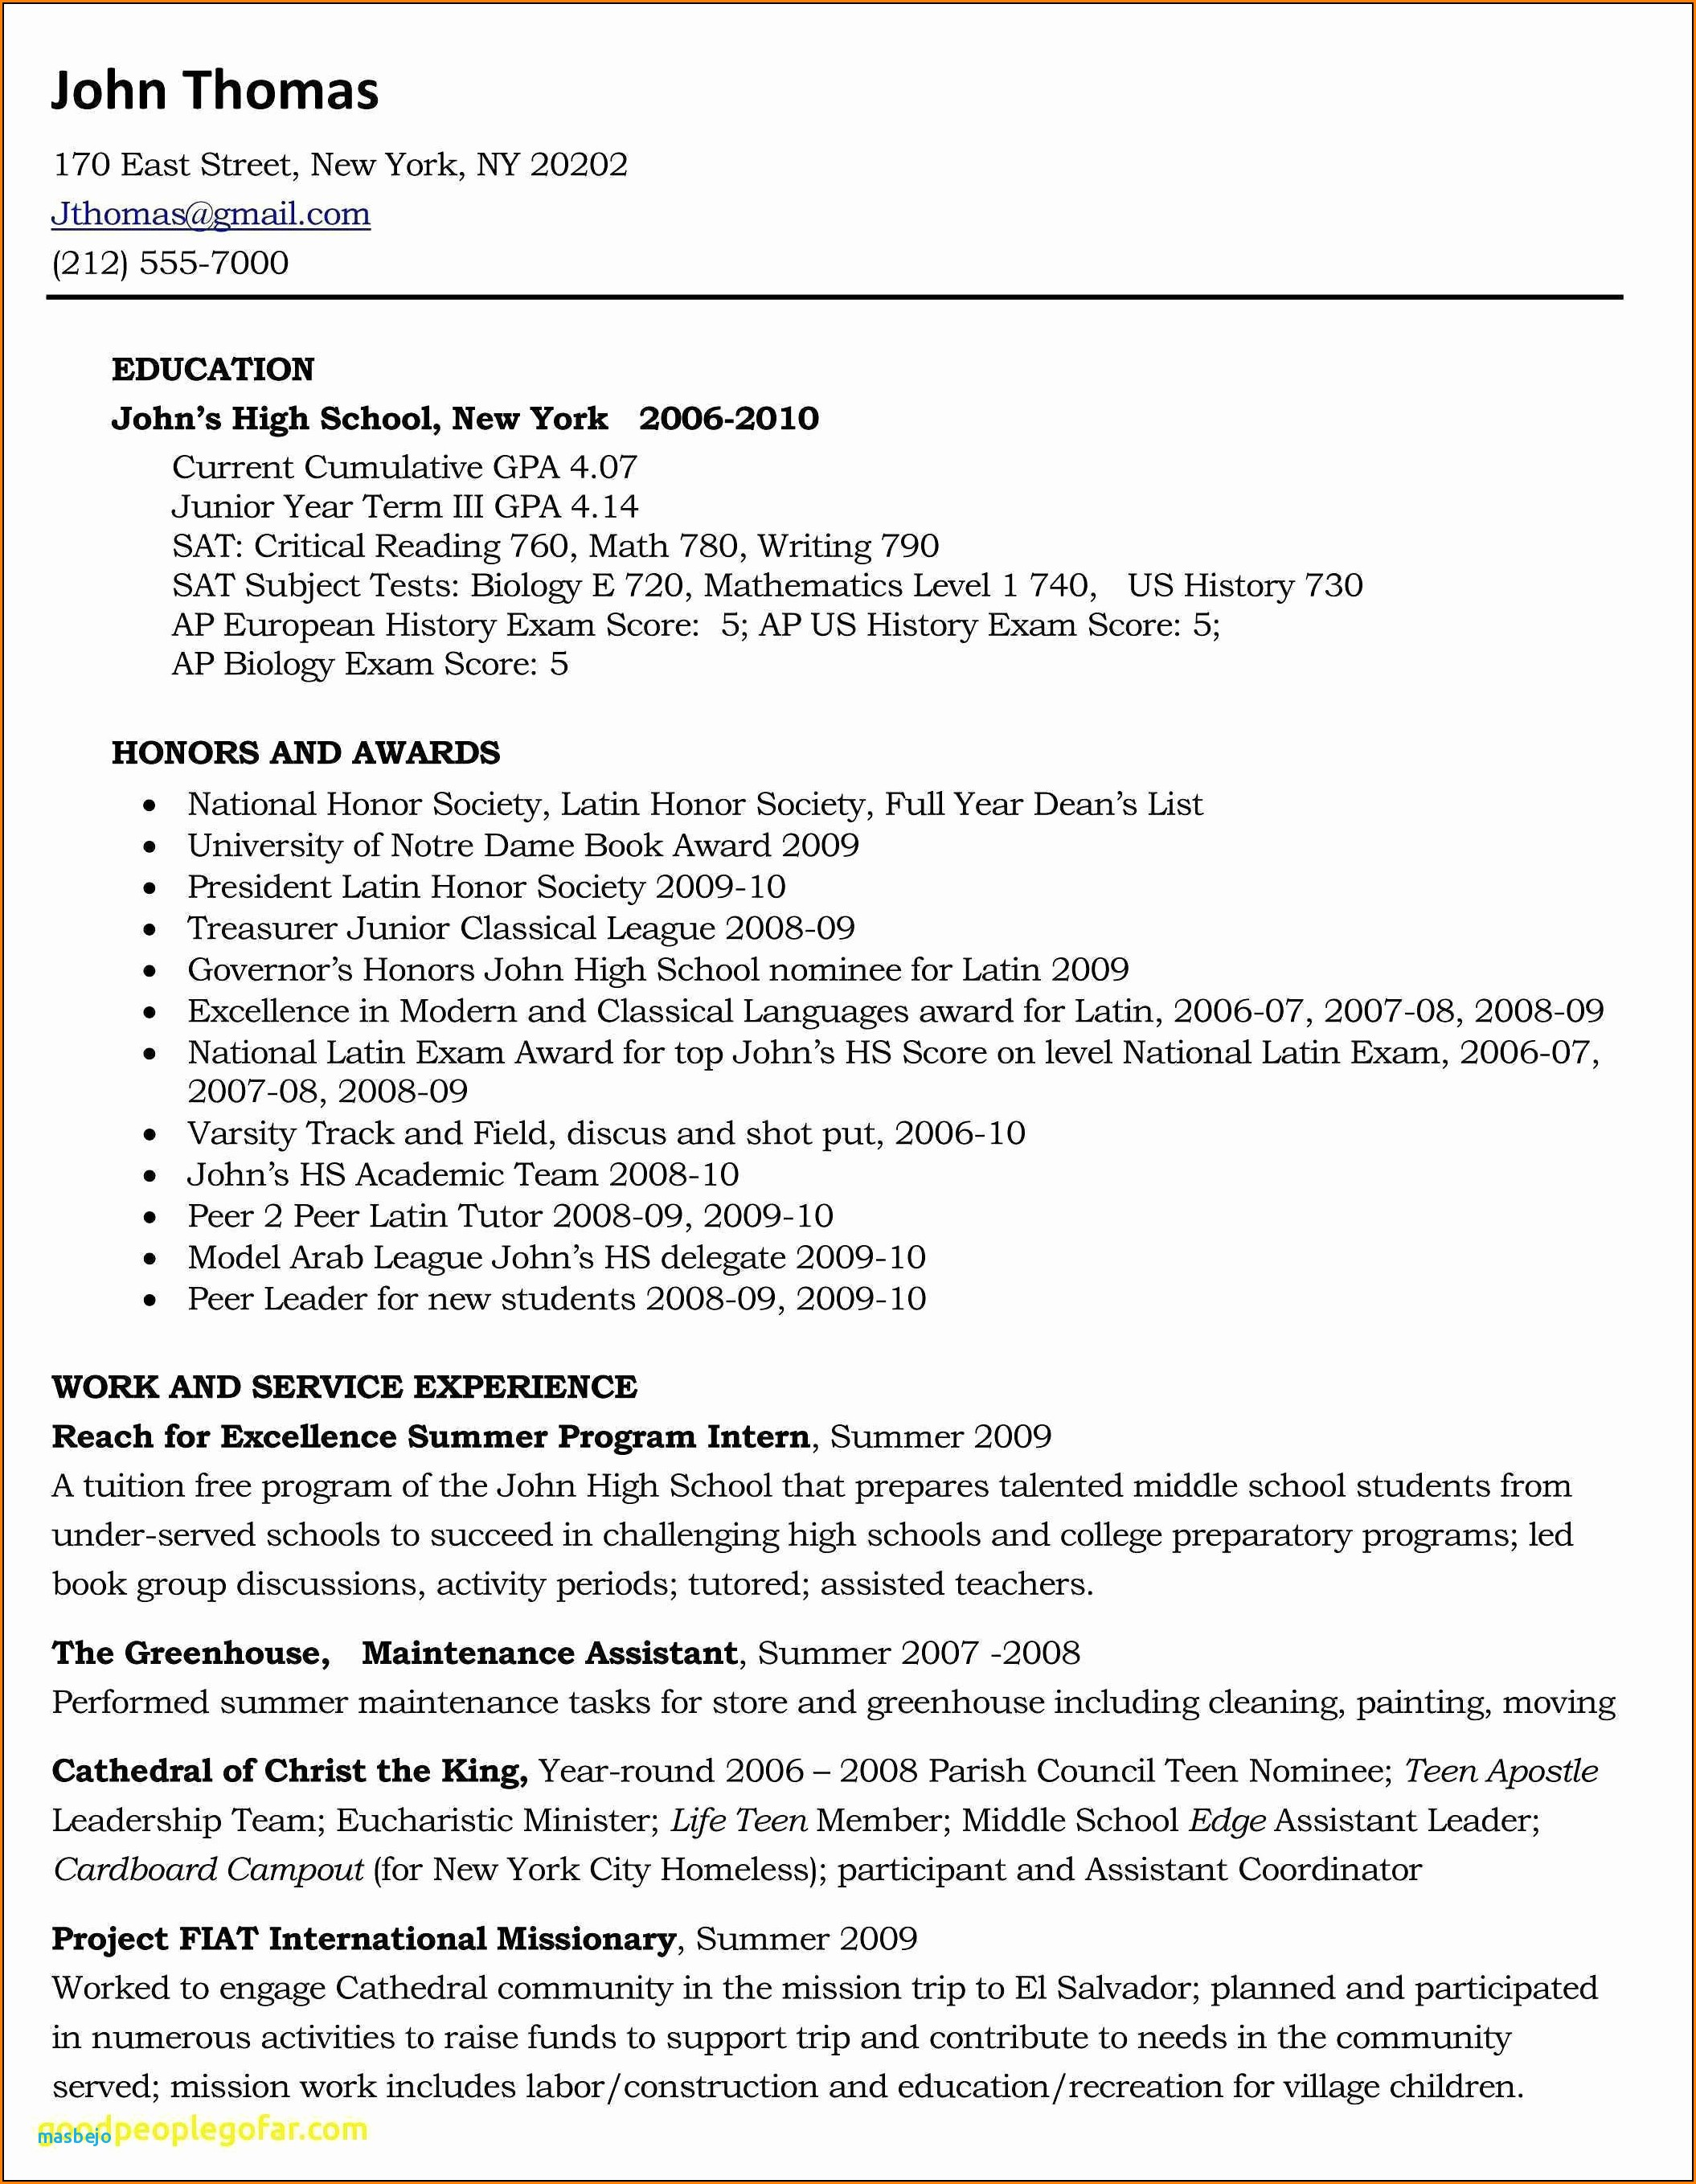 Resume Writers In Nyc